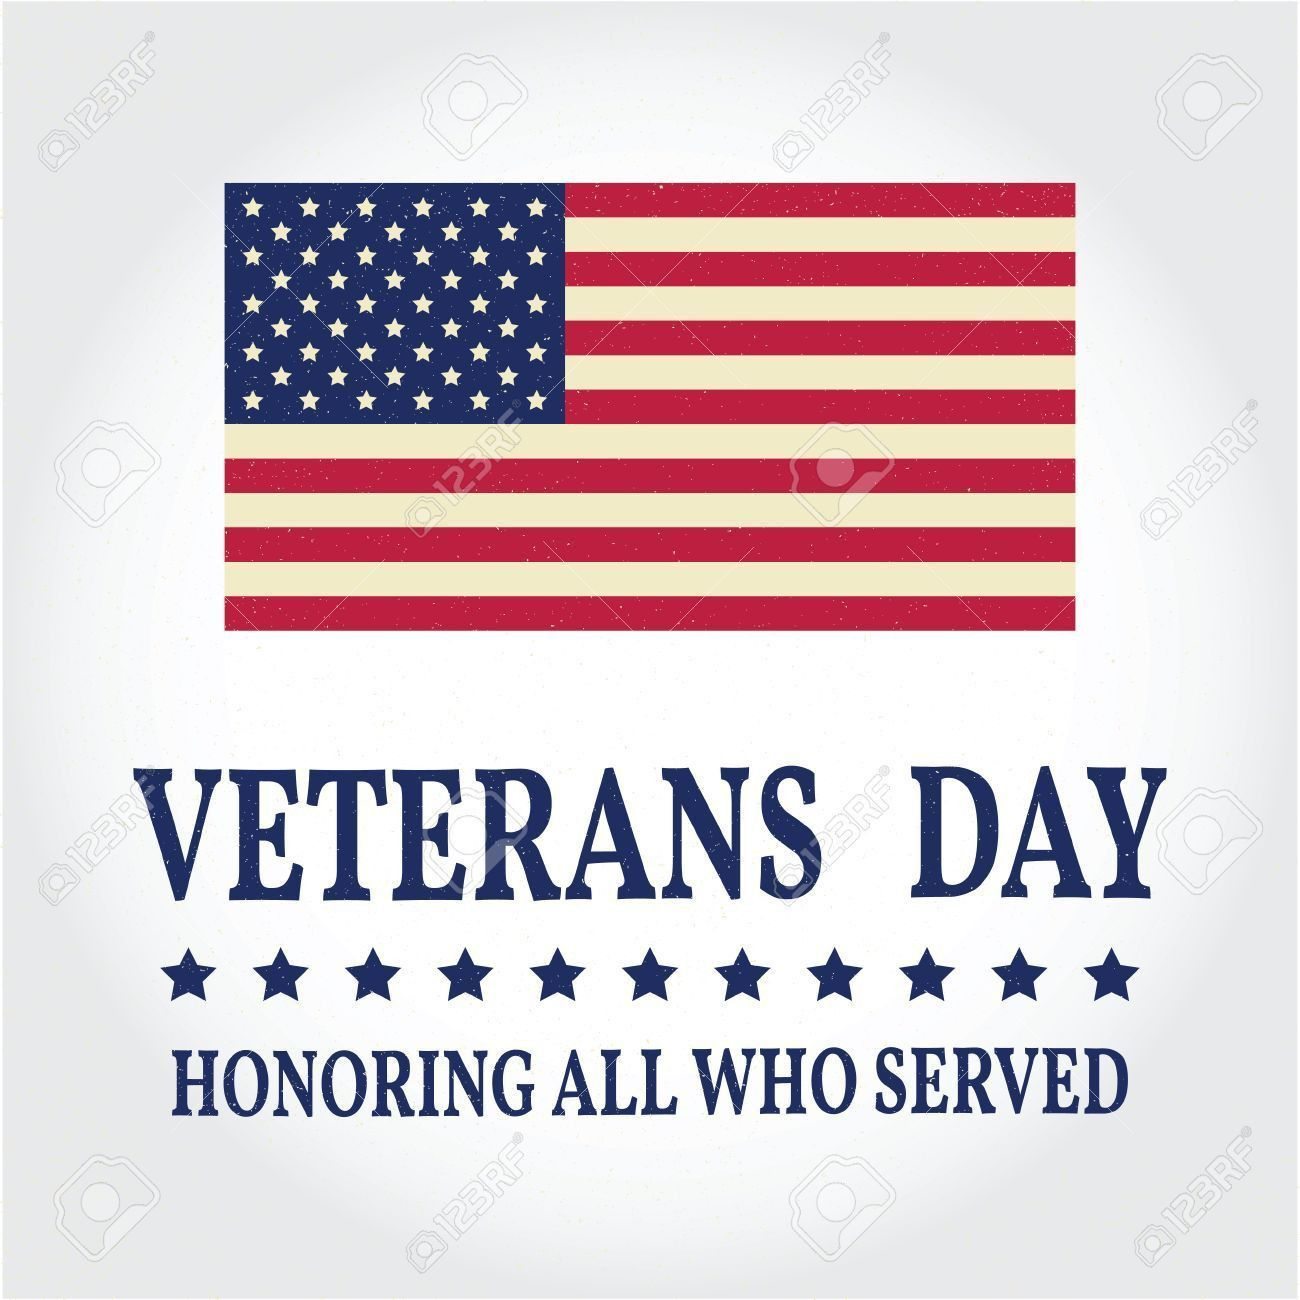 2 Veterans Day Holiday Worksheets Veterans day Veterans day Vector Veterans day Drawing